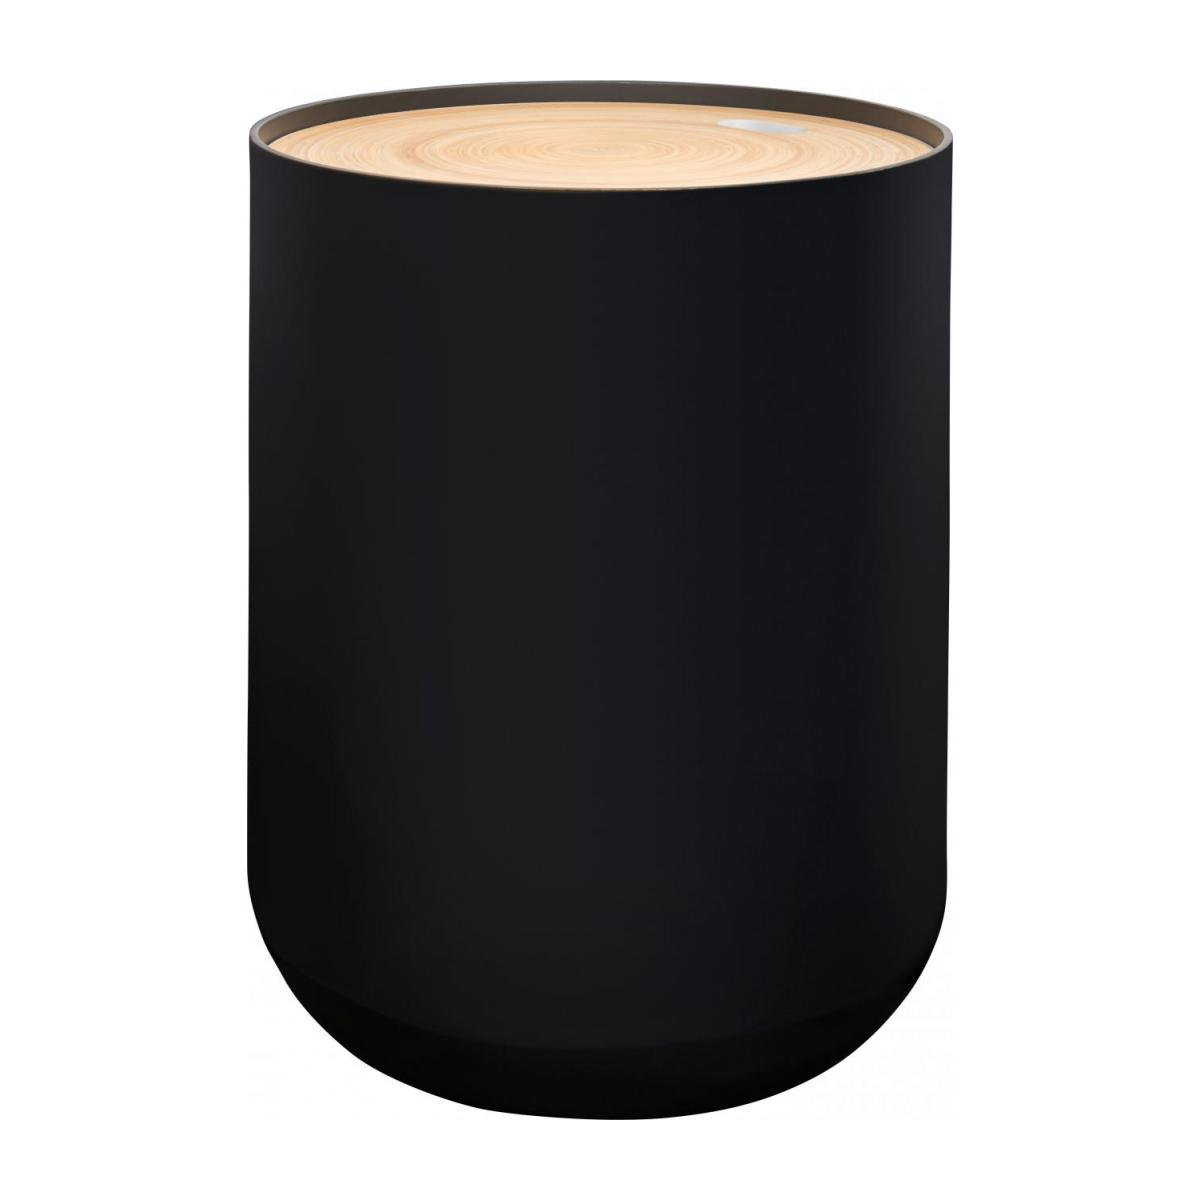 Black bamboo side table 40cm n°1